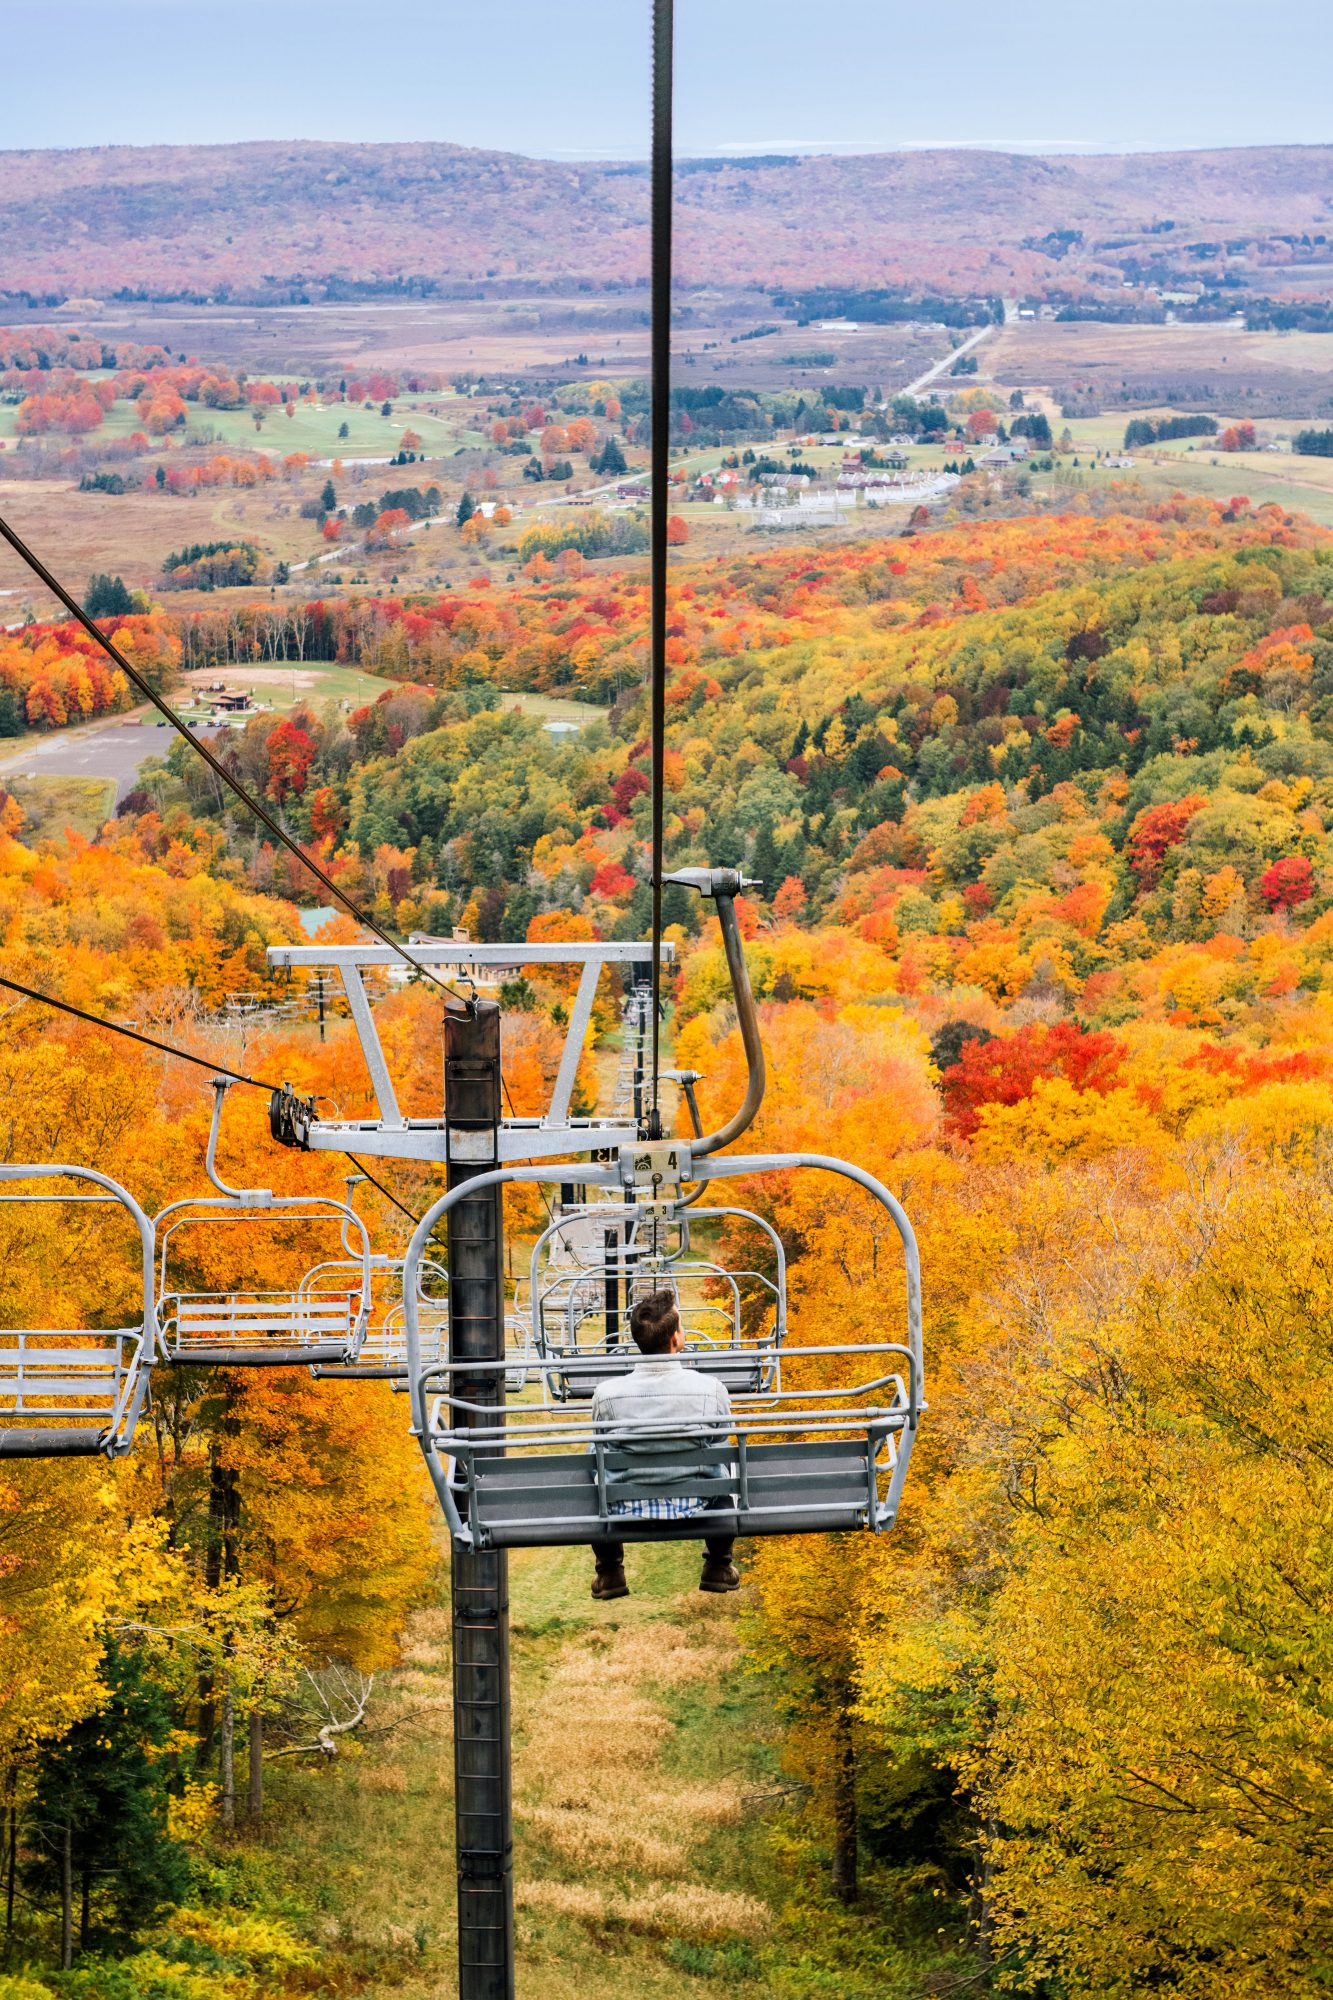 Chairlift view in the fall at Canaan Valley Resort & Conference Center in West Virginia